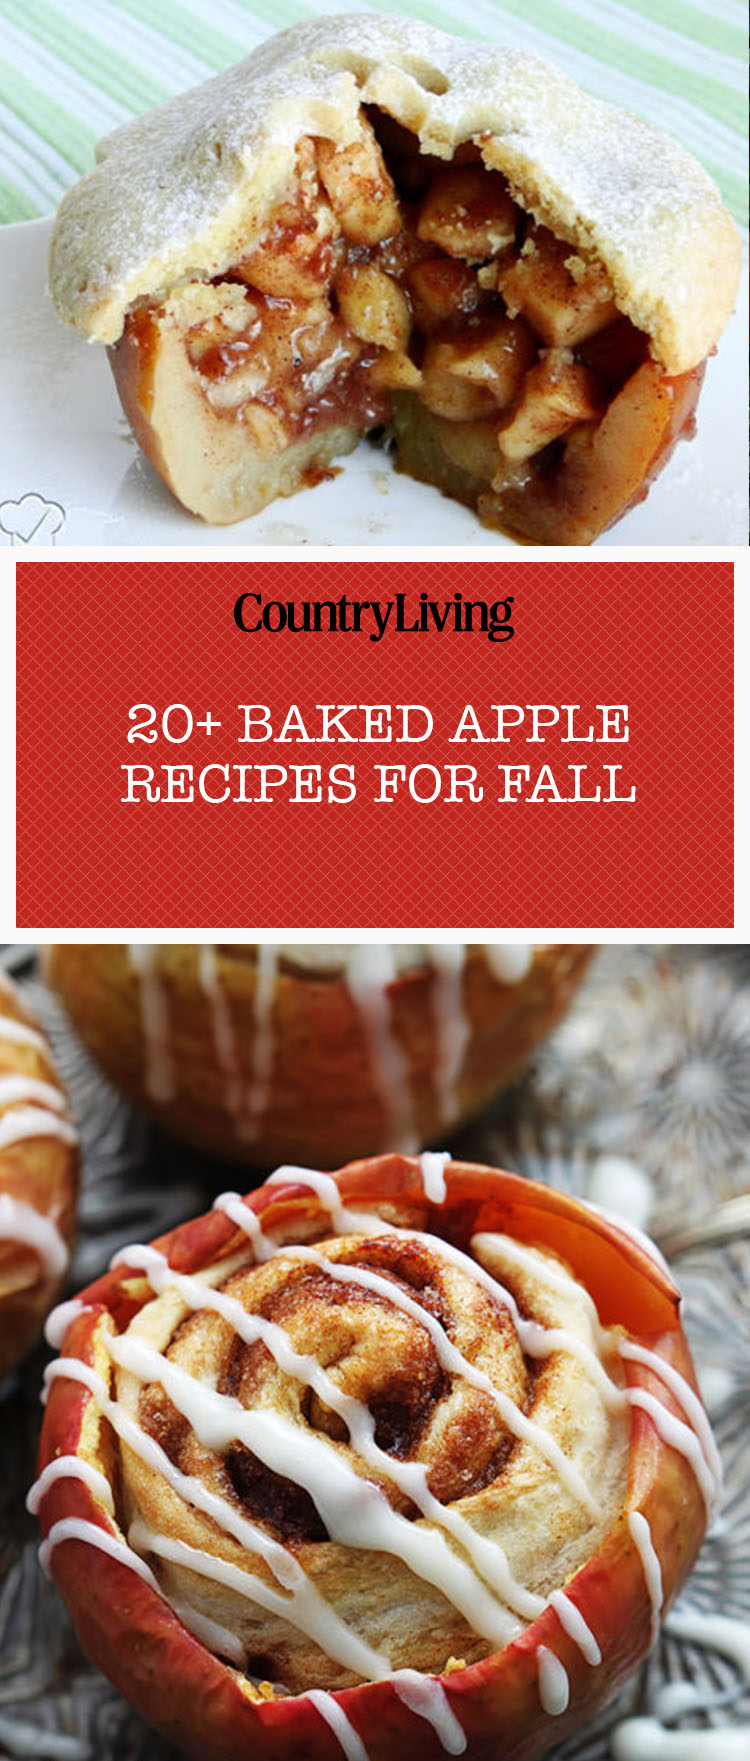 23 Fall Baked Apple Recipes Easy